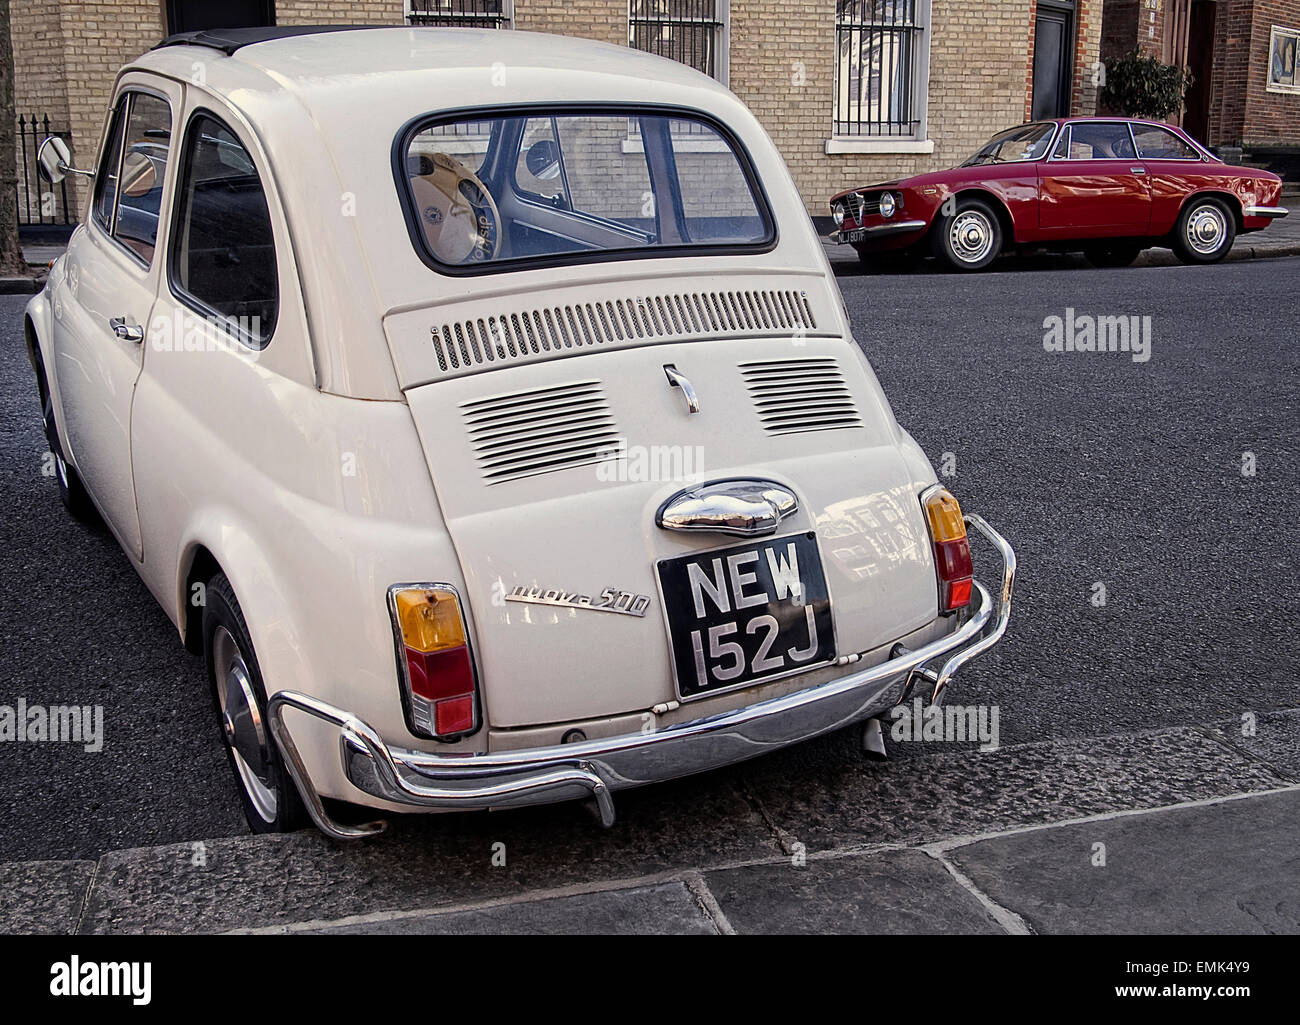 1960's Fiat 500 and Alfa Romeo Guilia Sprint parked on the street in London UK - Stock Image